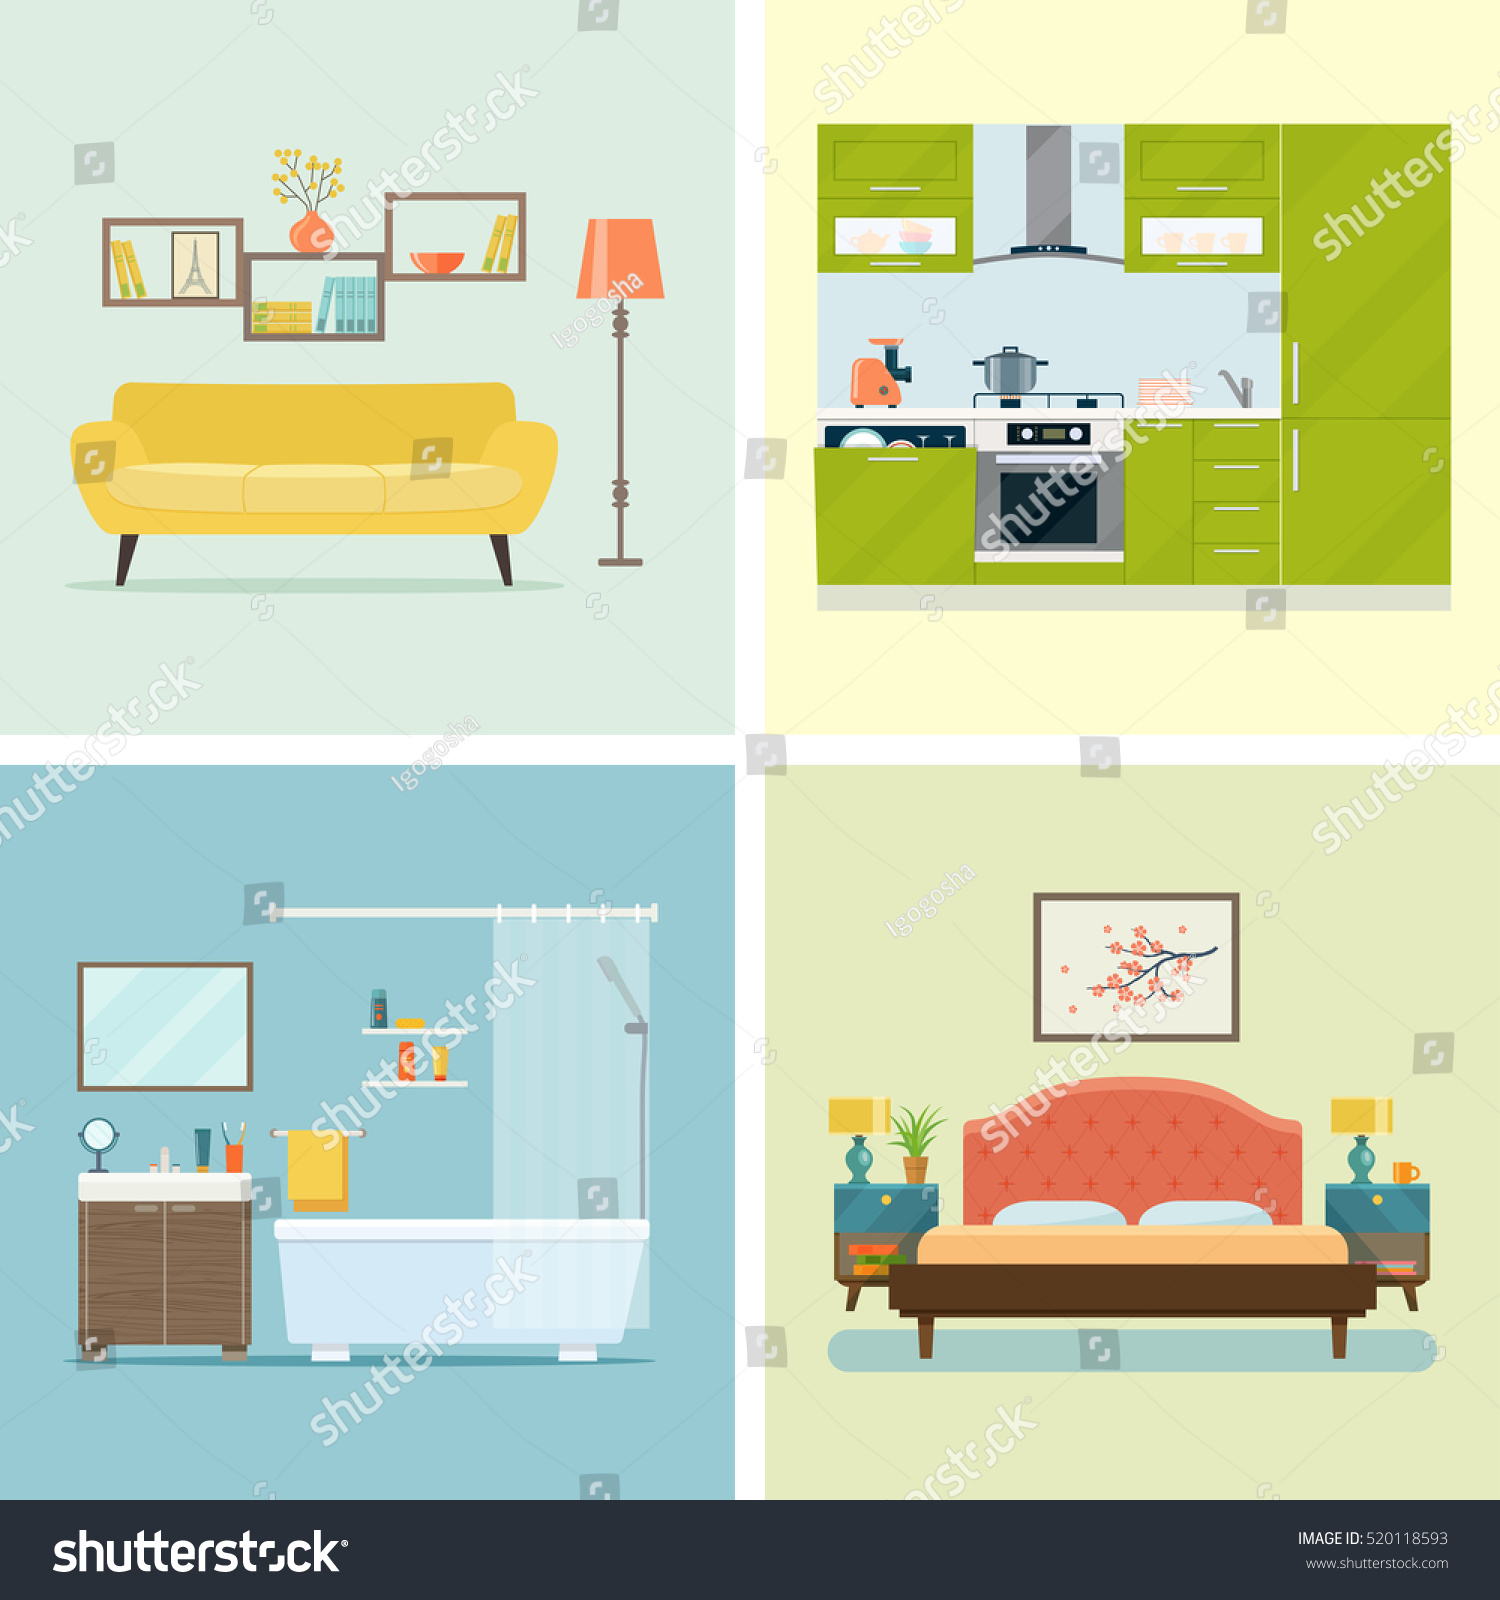 Interior Of Modern Living Room In Flat Design Stock Vector: Set Interior Design Room Living Room Stock Vector